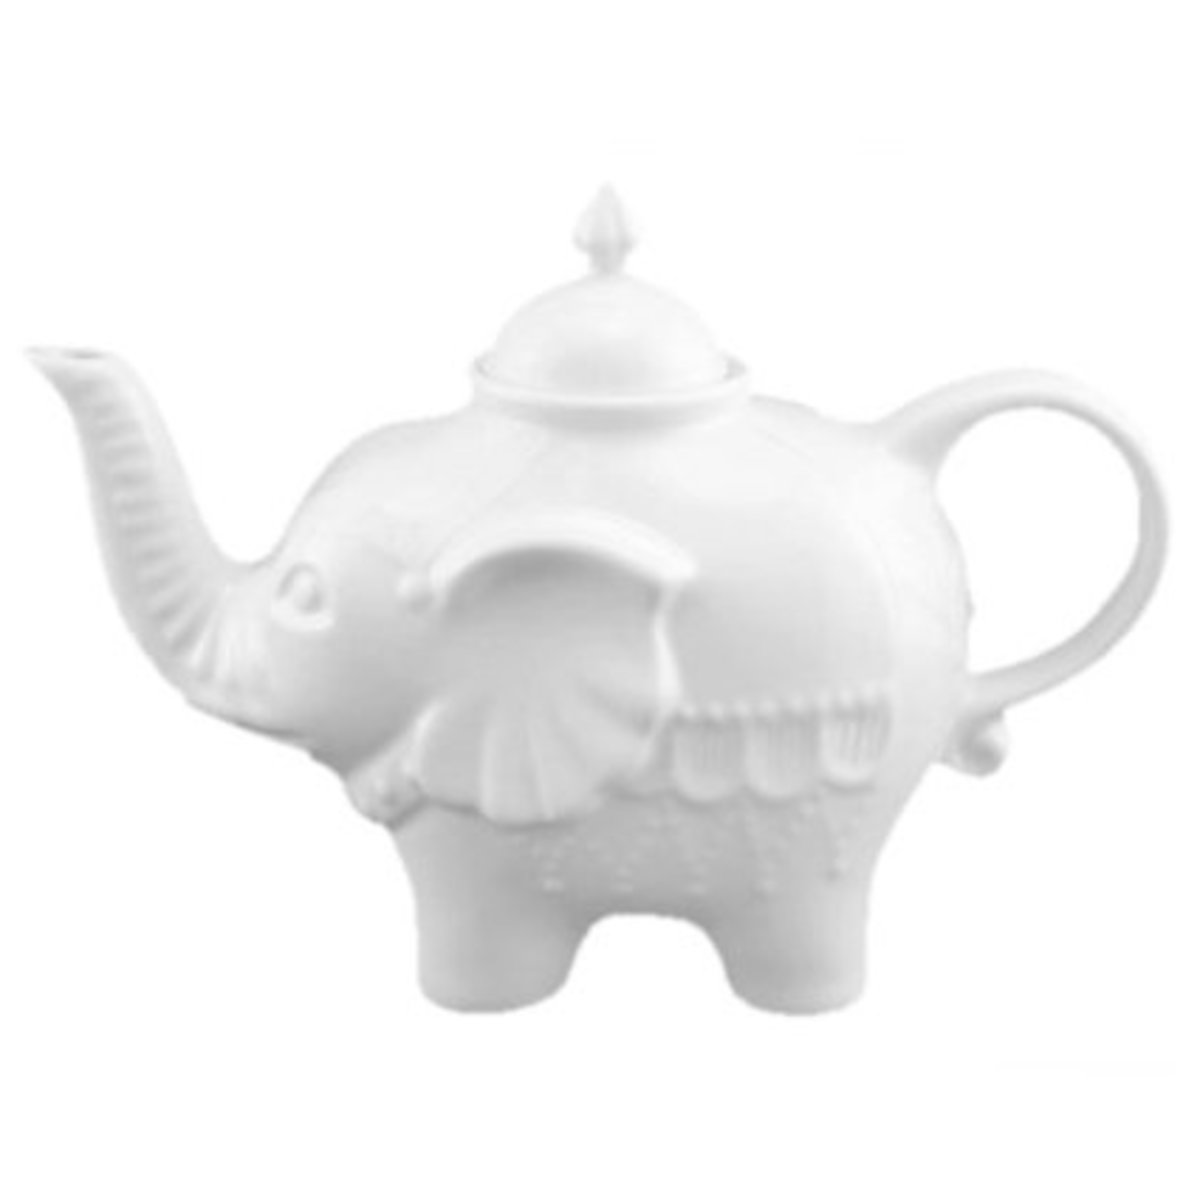 This white elephant teapot is precious.